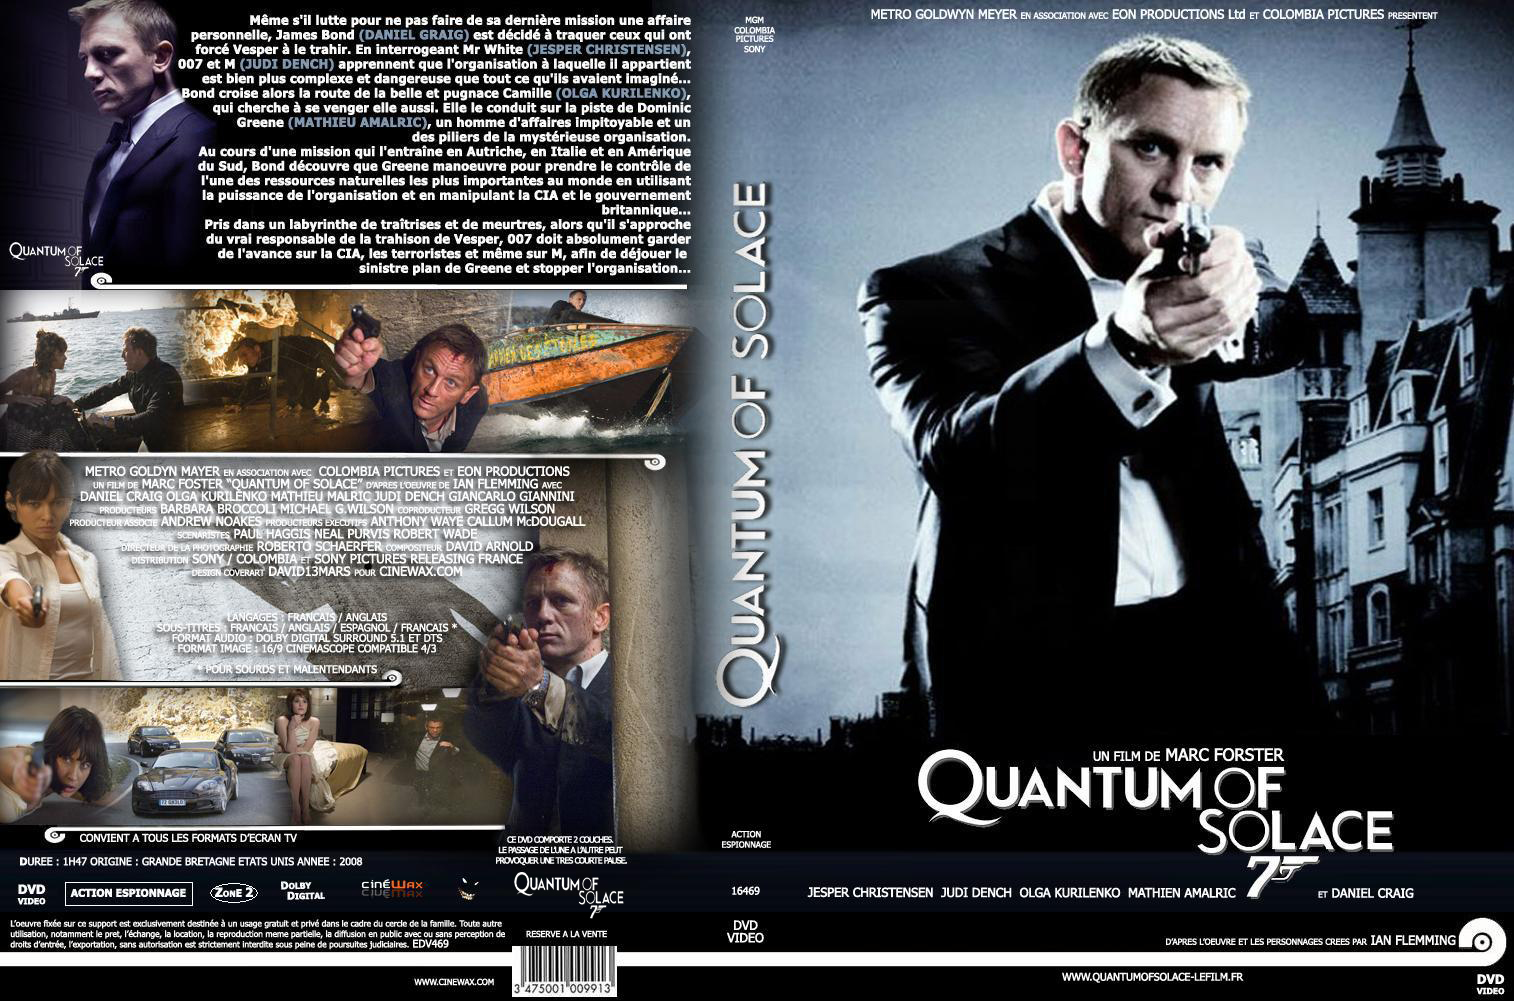 quantum of solace dvd cover - photo #32